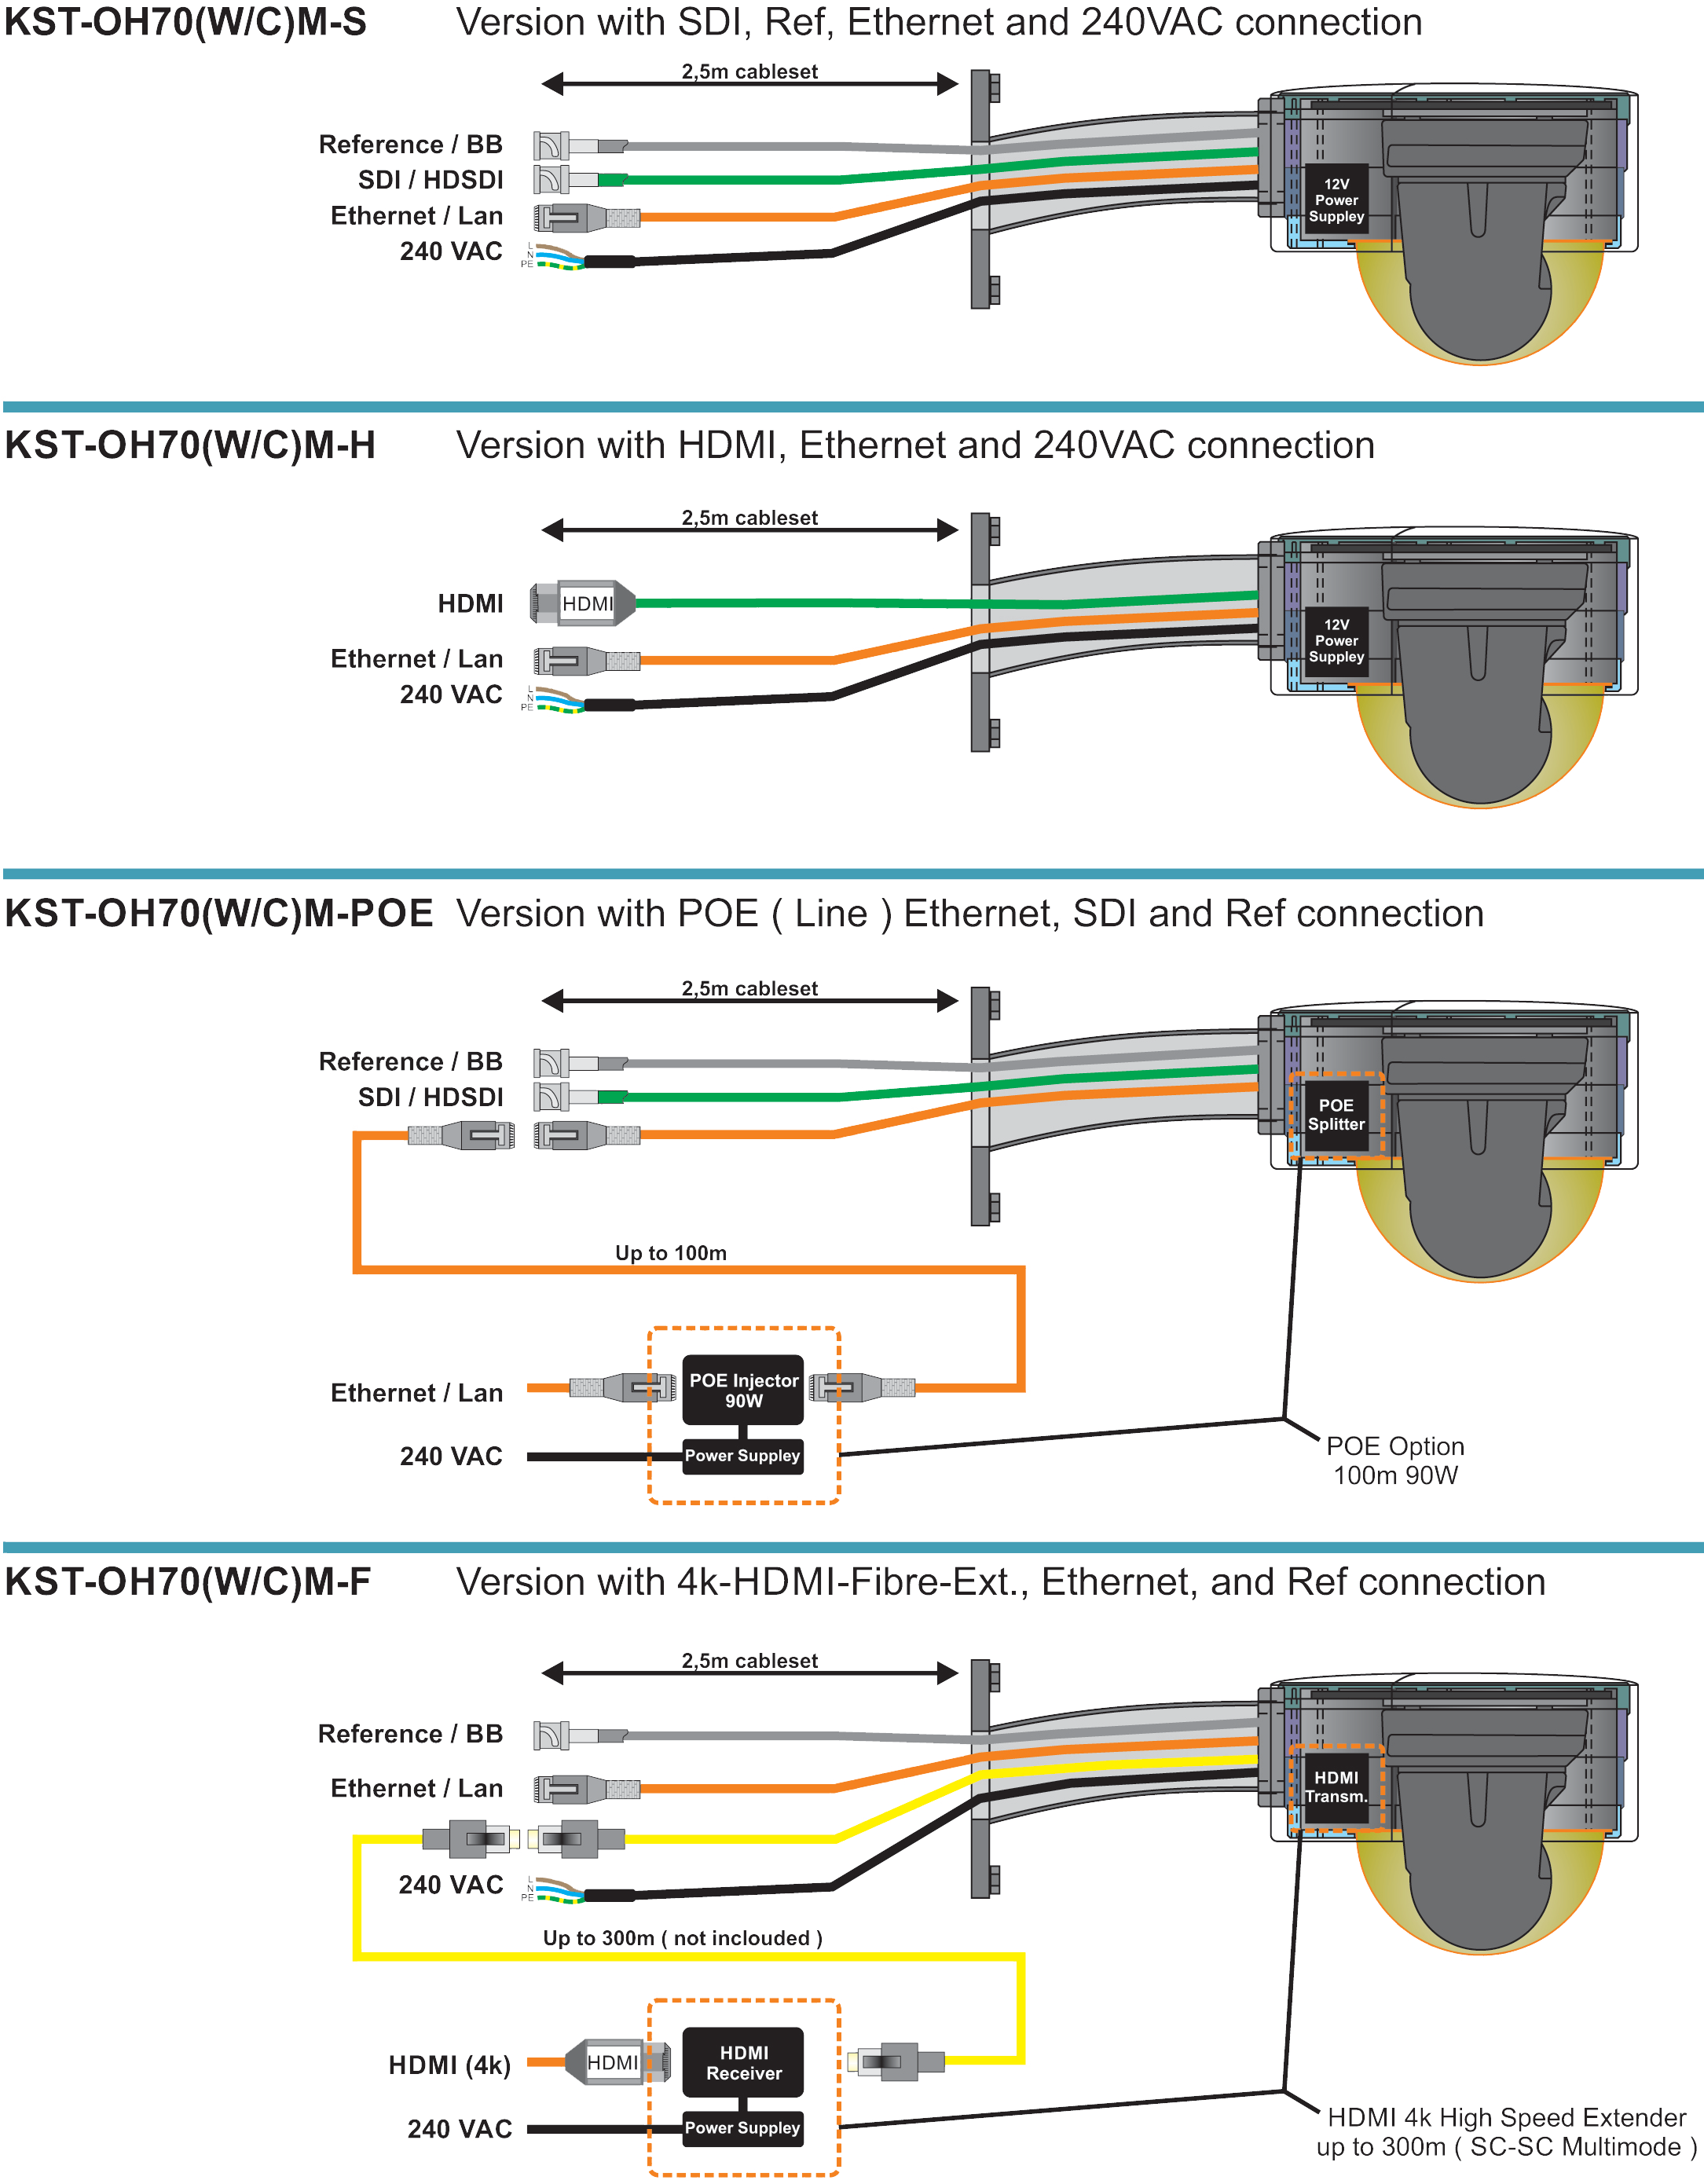 KST Outdoor Housing Connection Options